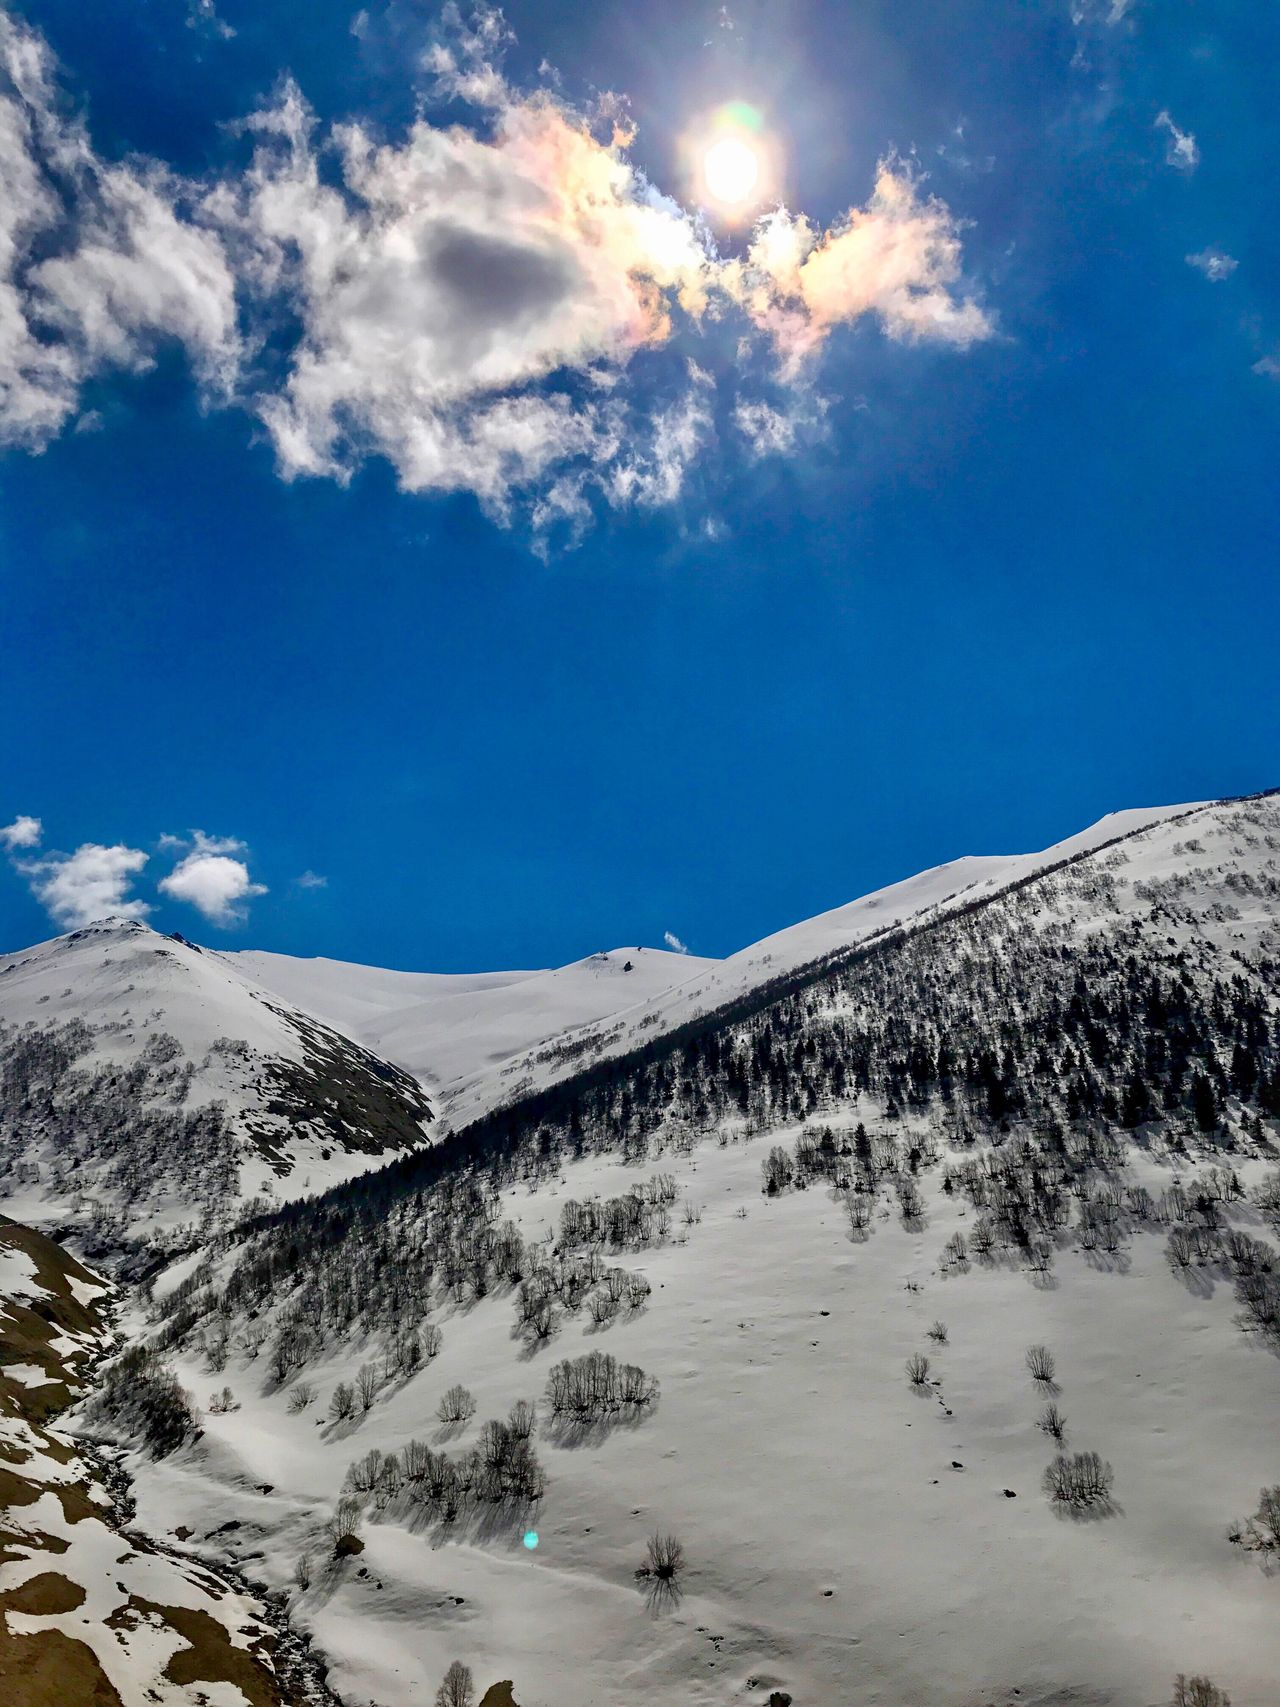 Snow Mountain Winter Cold Temperature Nature Sky Tranquility Beauty In Nature Tranquil Scene Cloud - Sky Outdoors Snowcapped Mountain Day Landscape Scenics Blue Sunlight No People Turkey Trabzon Uzungol Turkey Beauty In Nature Mountain Range Low Angle View